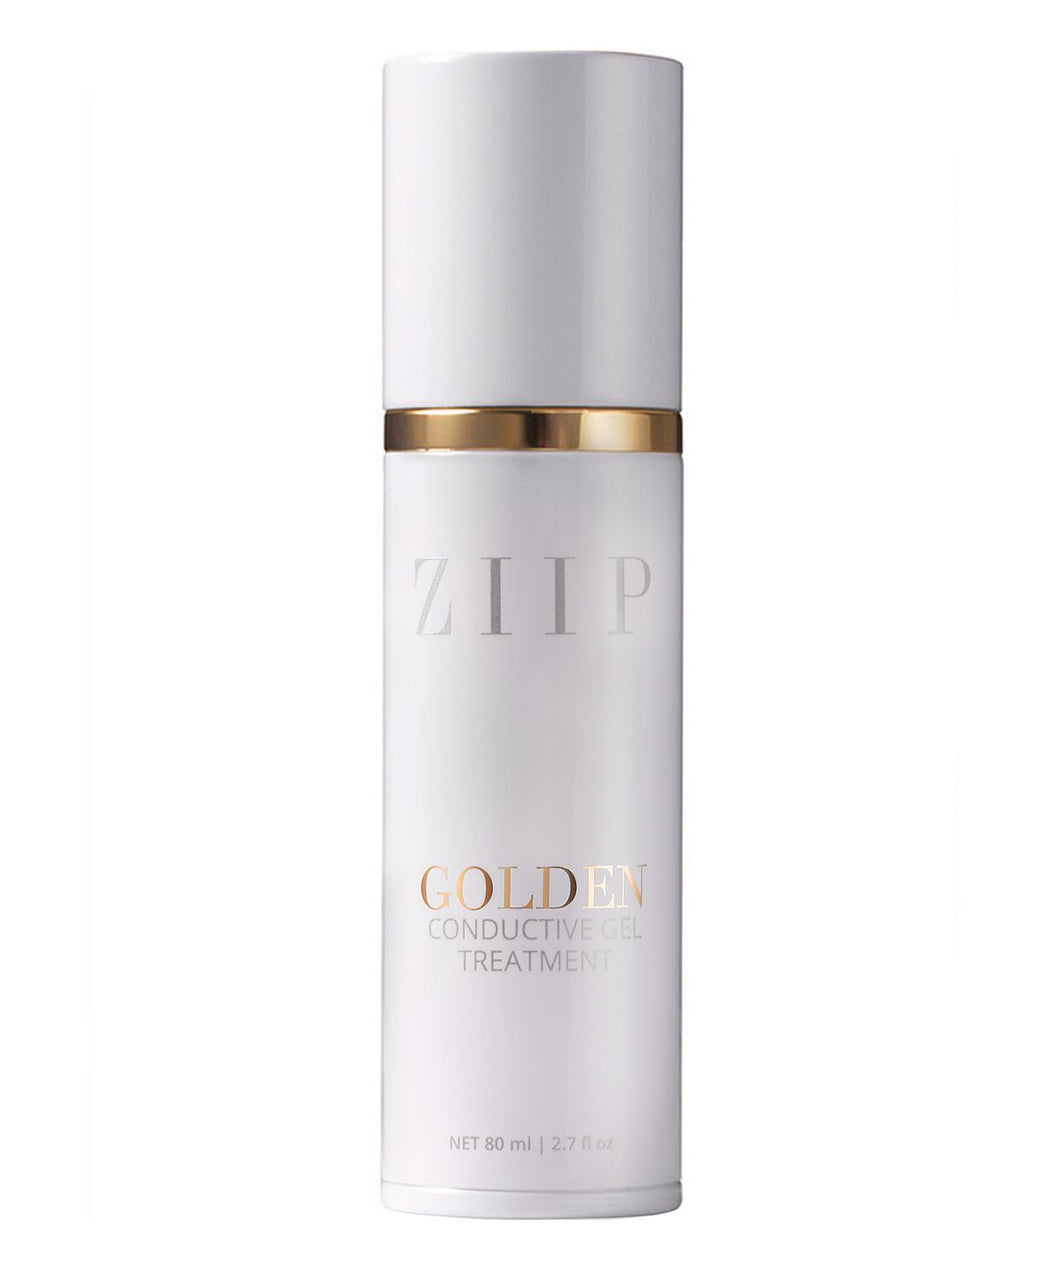 Golden Conductive Gel Treatment (80ml)